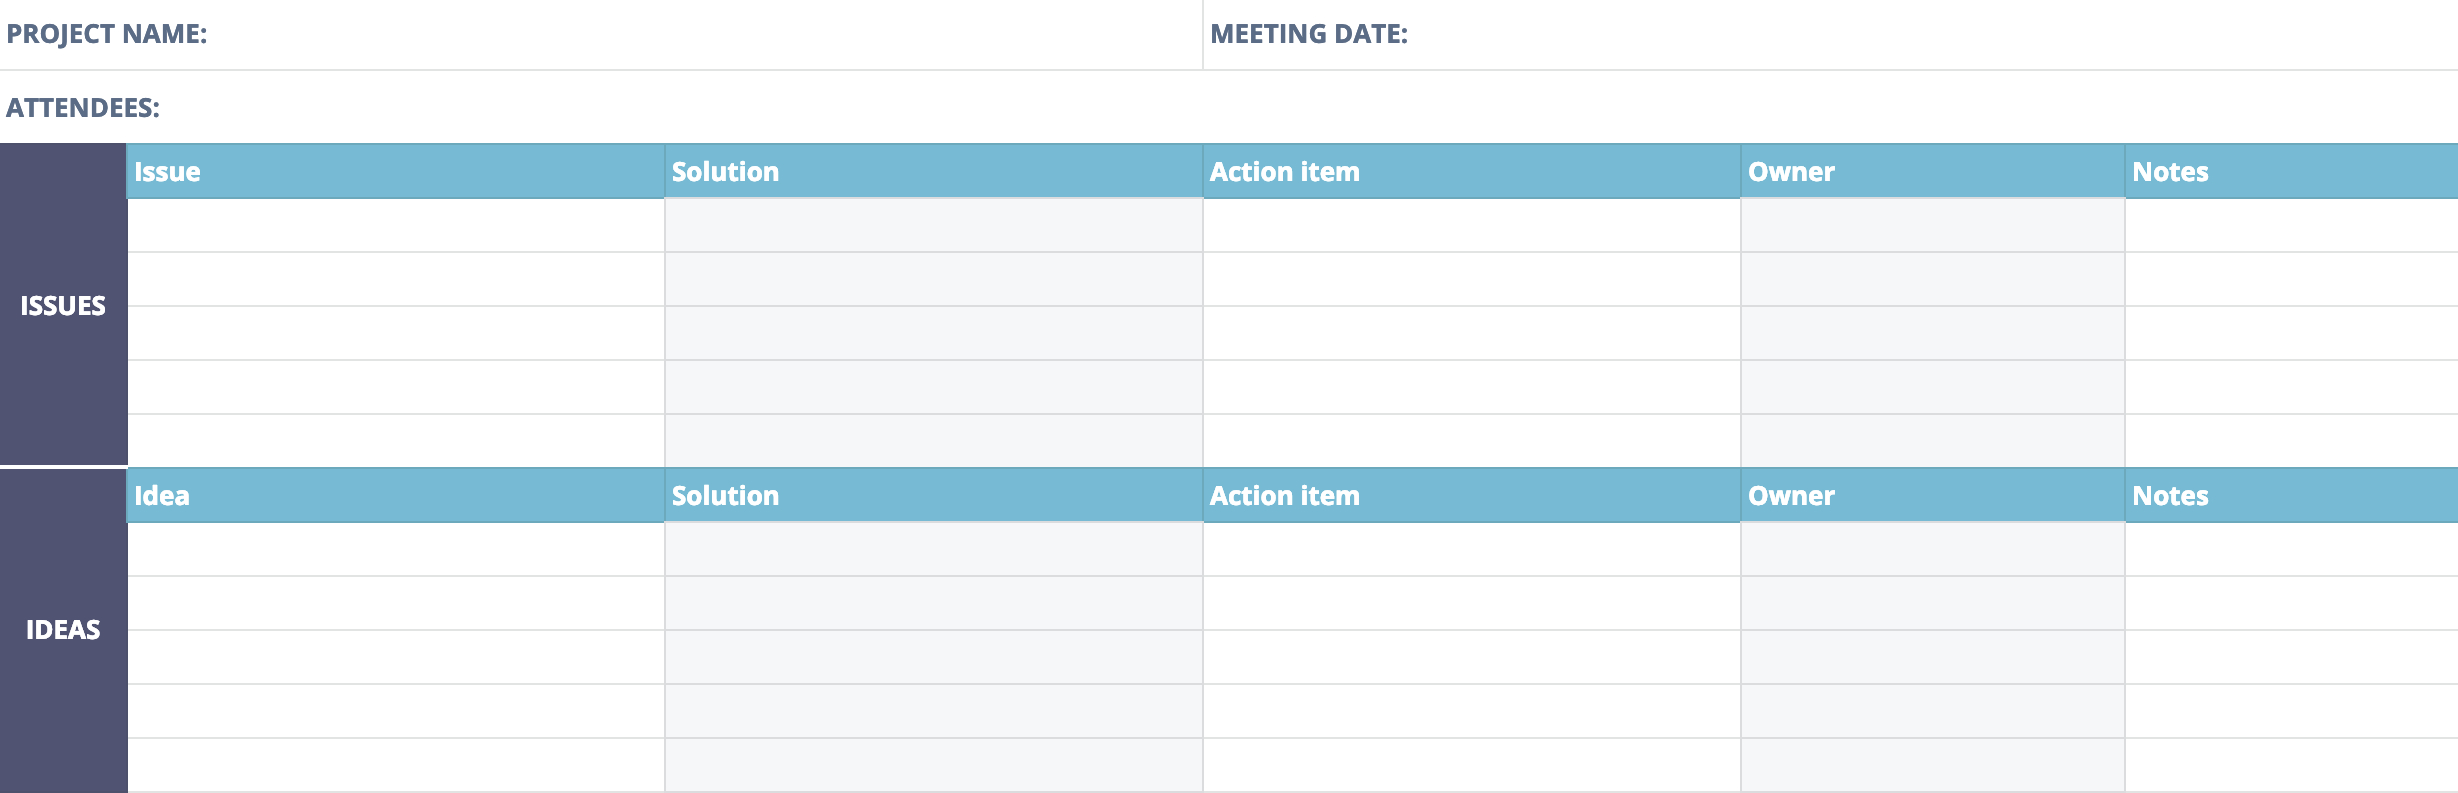 Post Mortem Meeting Template And Tips | Teamgantt Inside Post Mortem Template Powerpoint